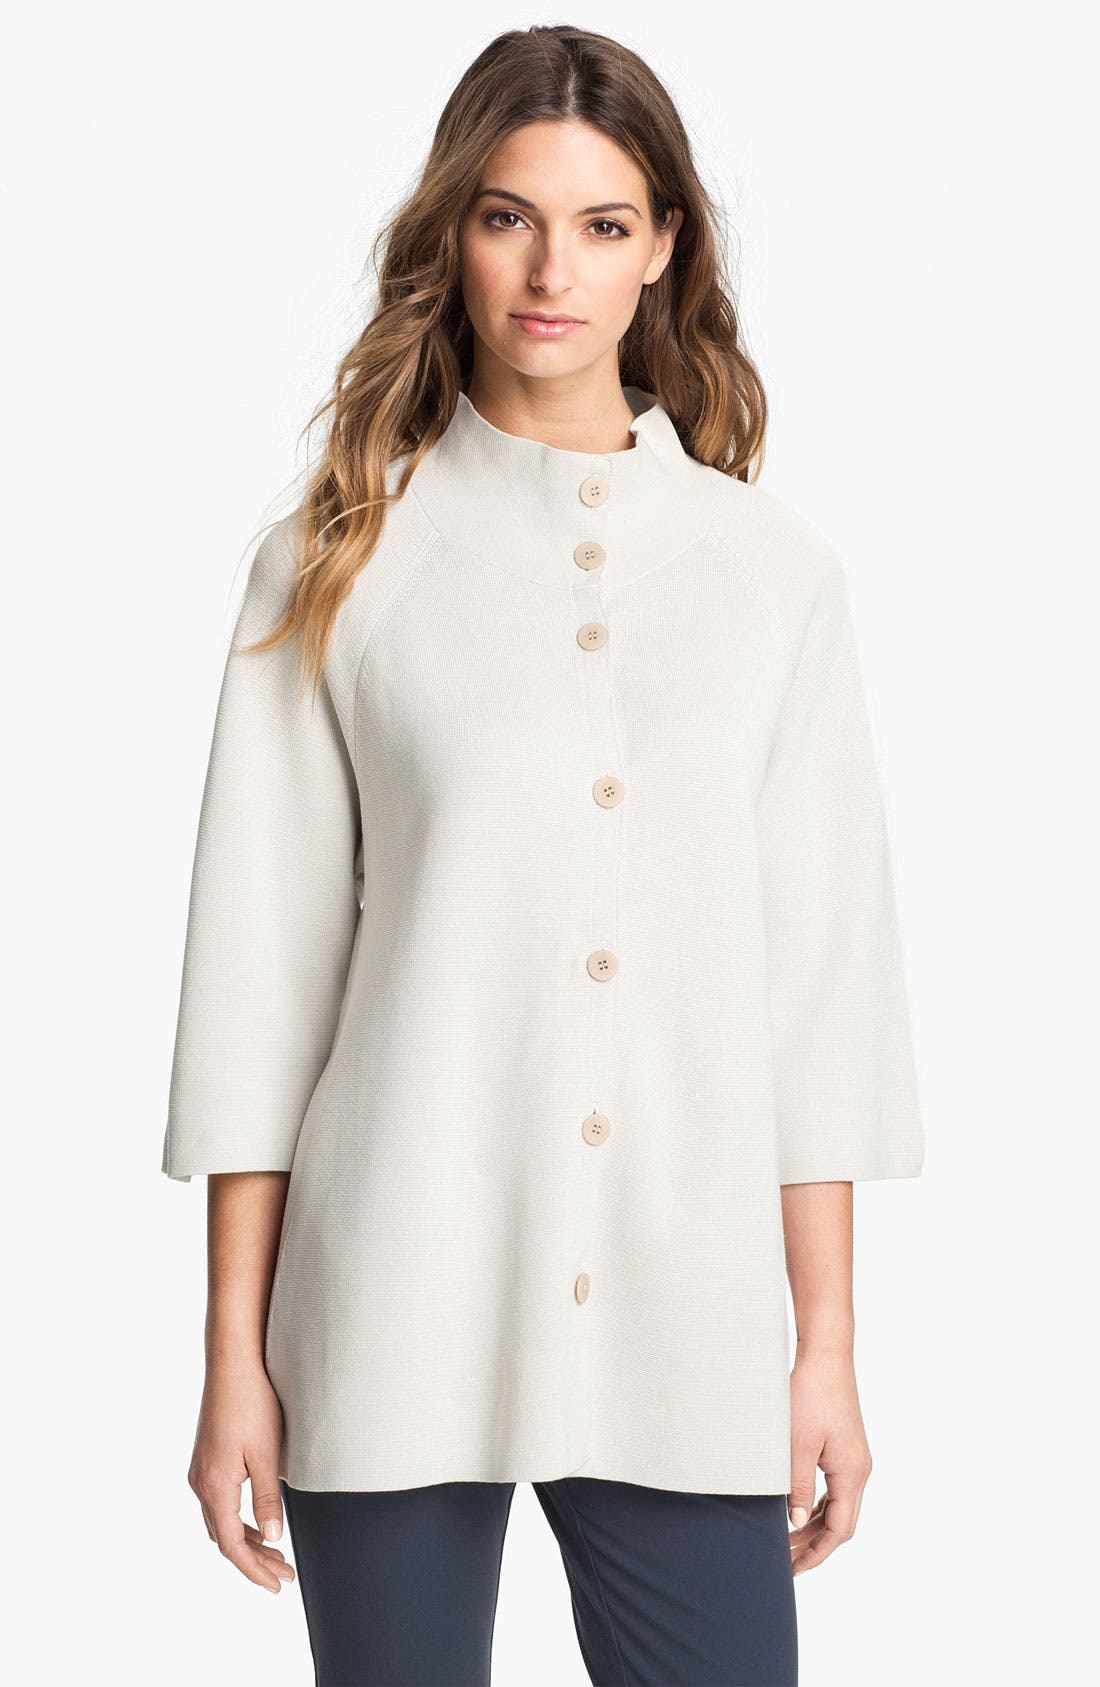 Alternate Image 1 Selected - Eileen Fisher Silk & Cotton Interlock Knit Jacket (Petite)